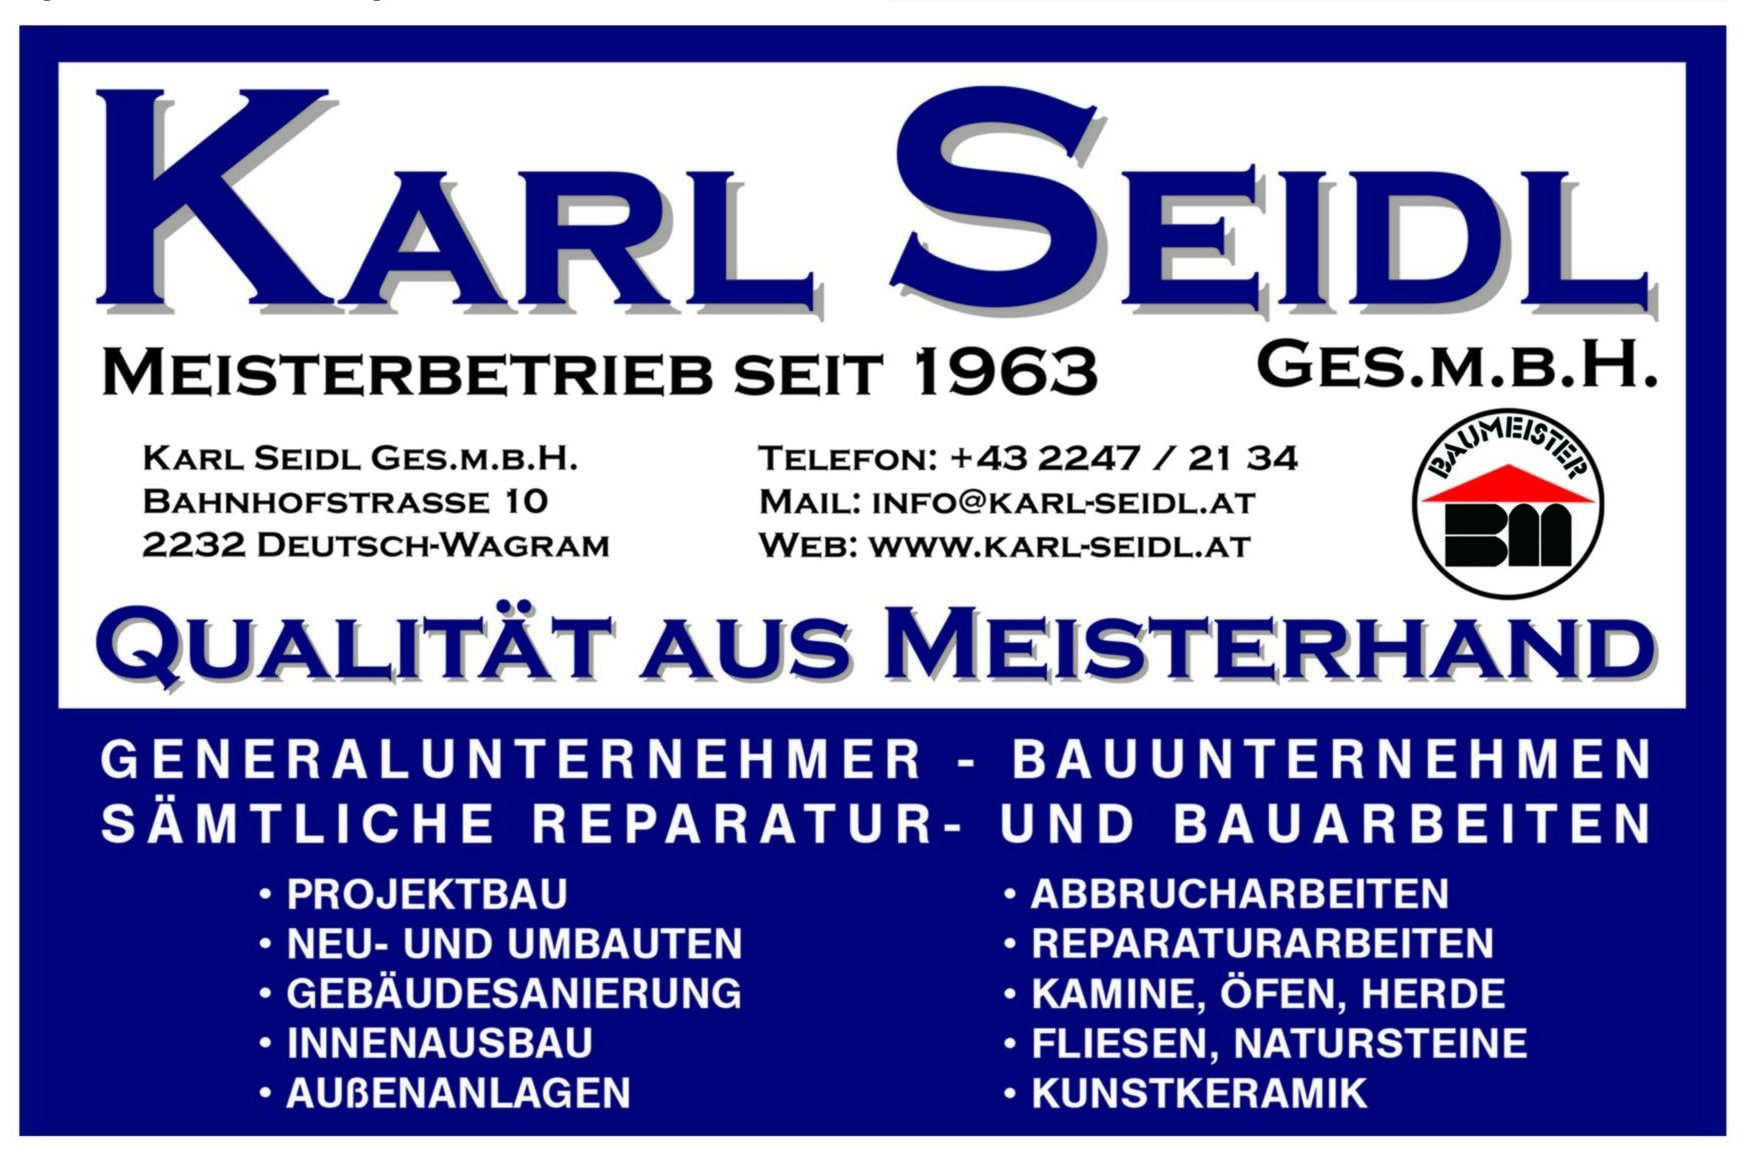 4x-Inserate-Seidl-und-Sugaa-scaled-e1600364298993.jpg